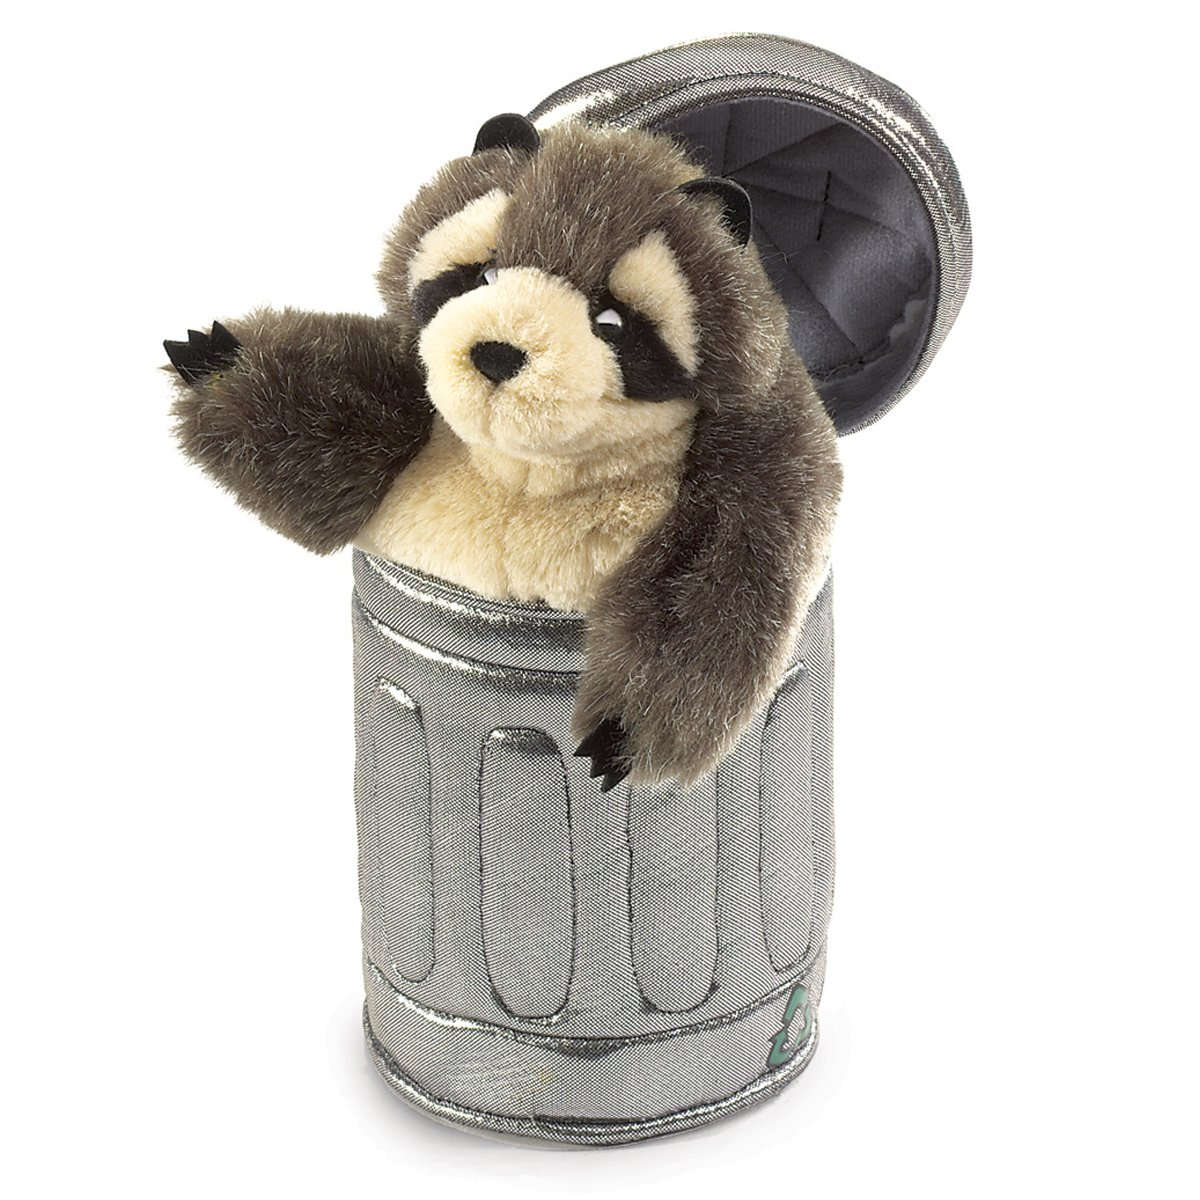 Folkmanis Puppets - 2321 - Marionnette et Théâtre - Raccoon in Garbage Can